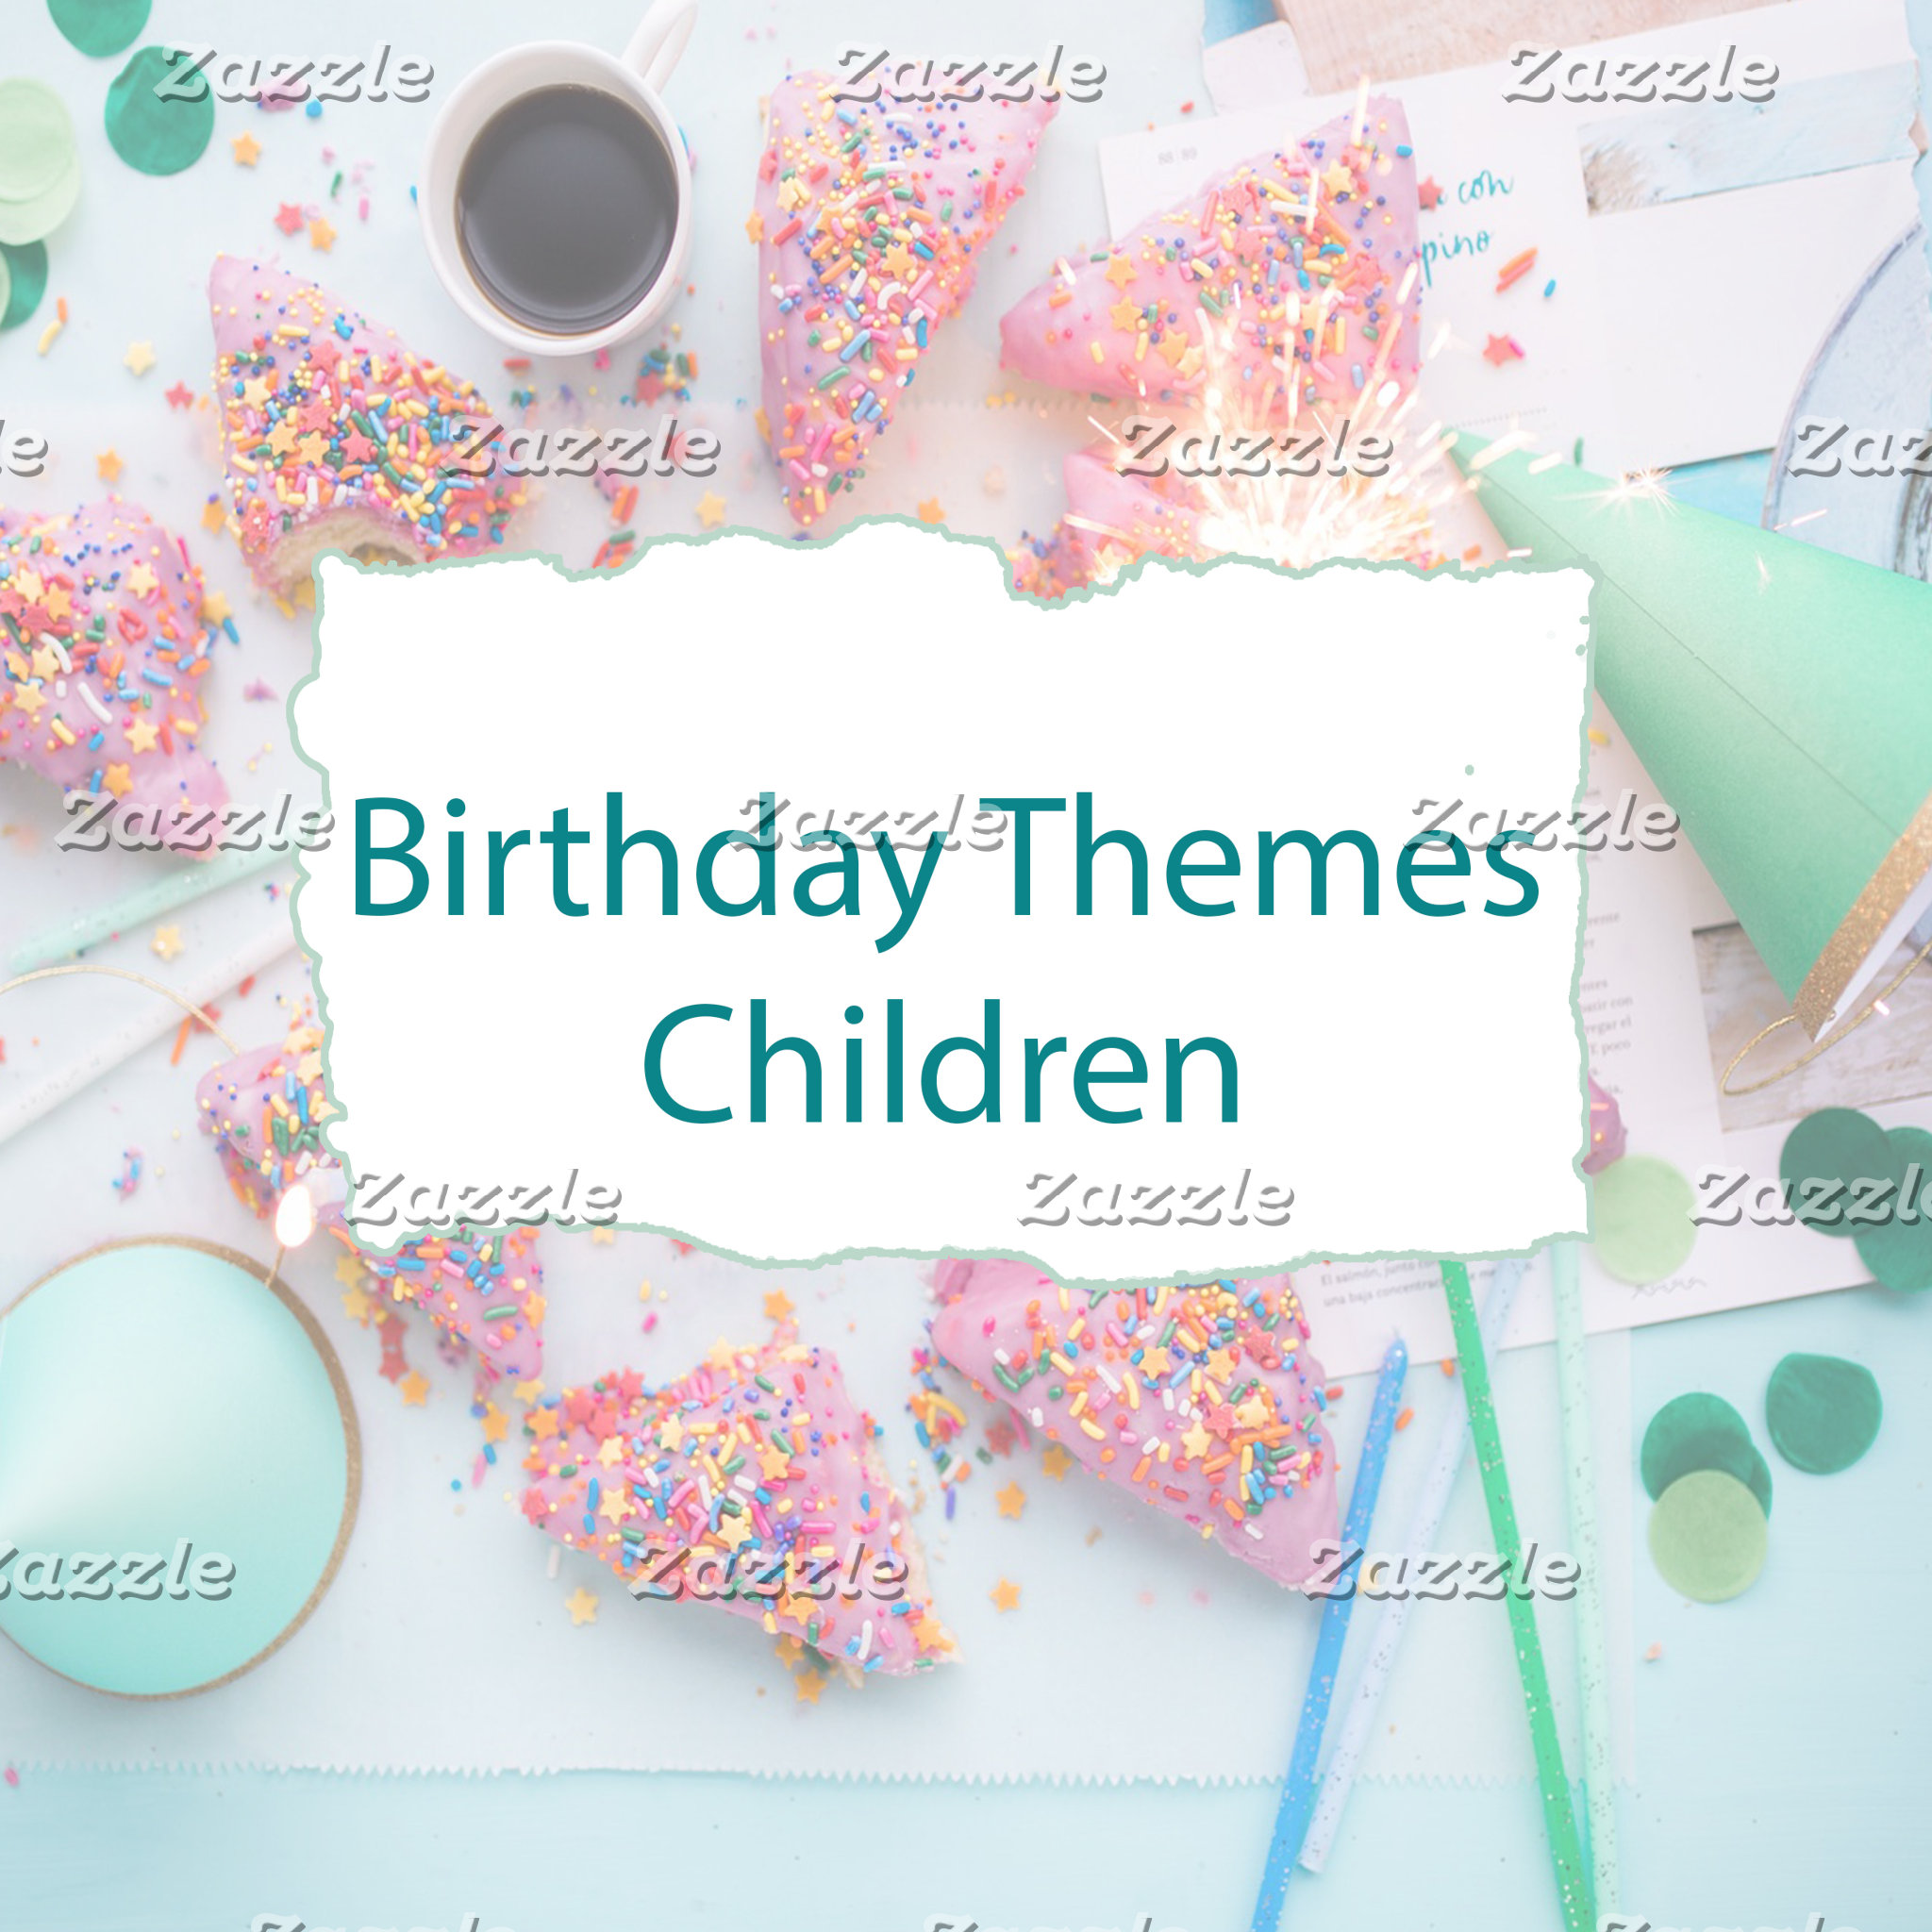 Birthday Themes Children